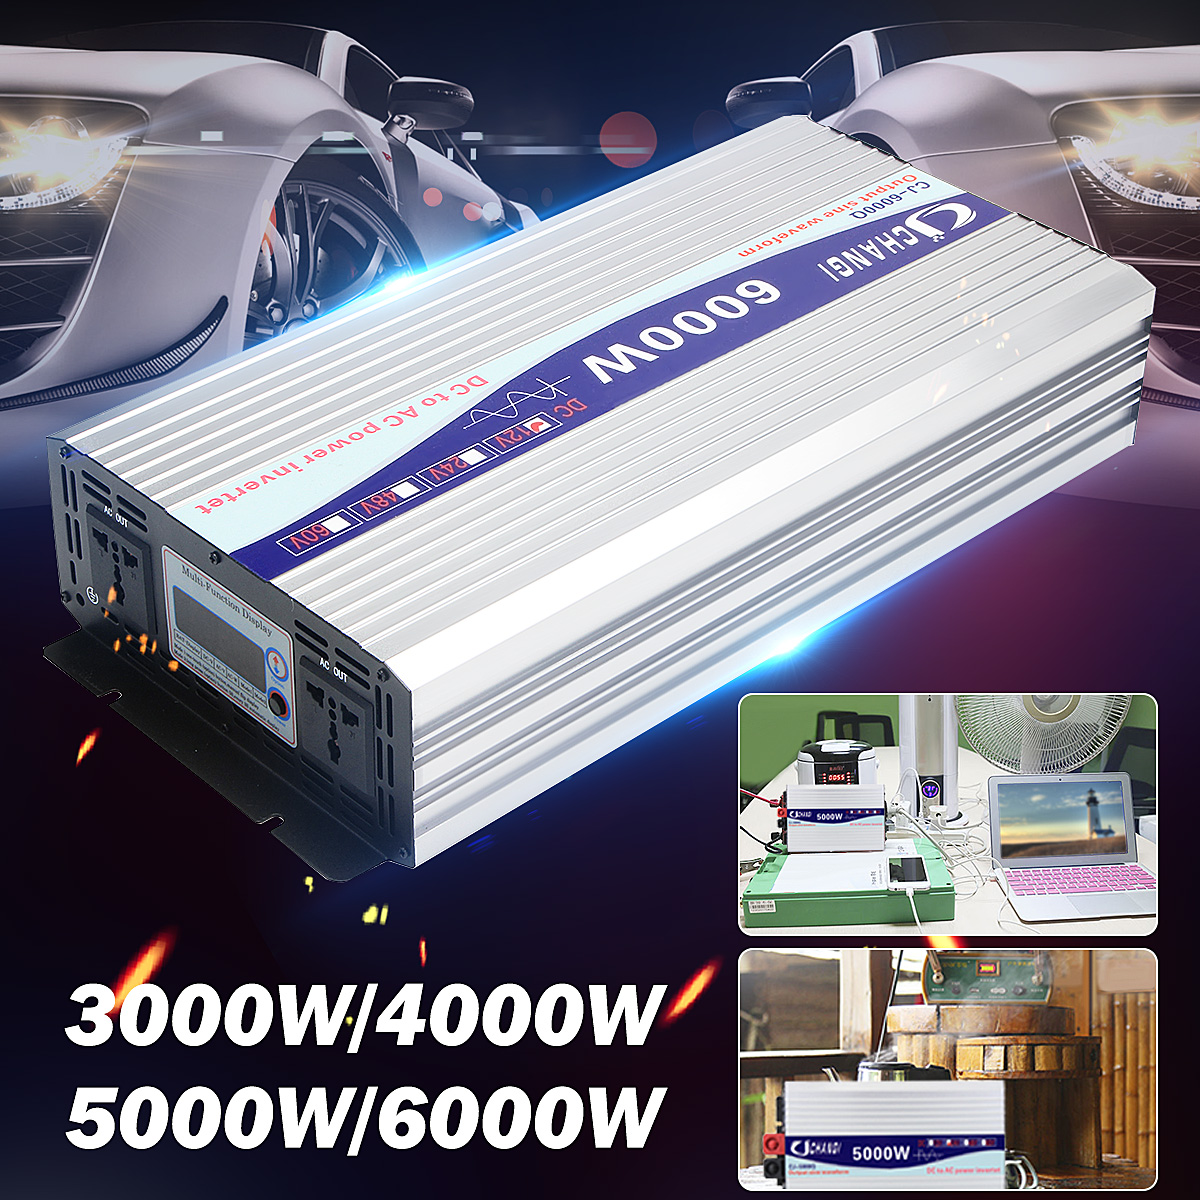 Car <font><b>Inverter</b></font> Intelligent Solar Pure Sine Wave <font><b>Inverter</b></font> 12V/<font><b>24V</b></font> To 110V 5000W/<font><b>6000W</b></font> Power Converter Digital Display for Home image